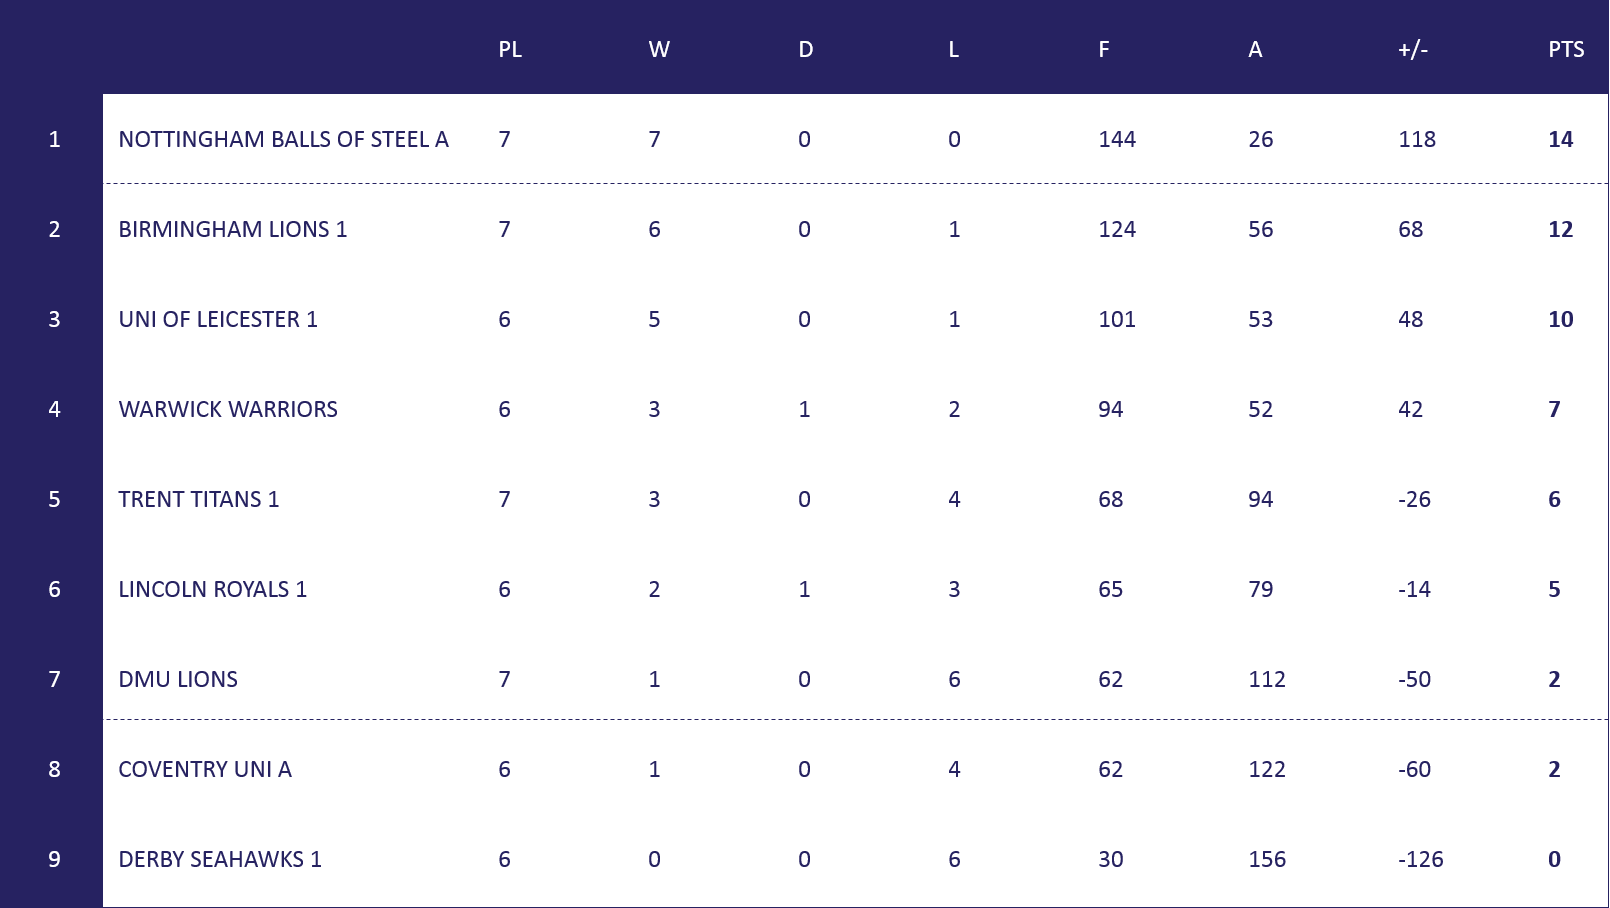 Men's Mid Uni 1 Table